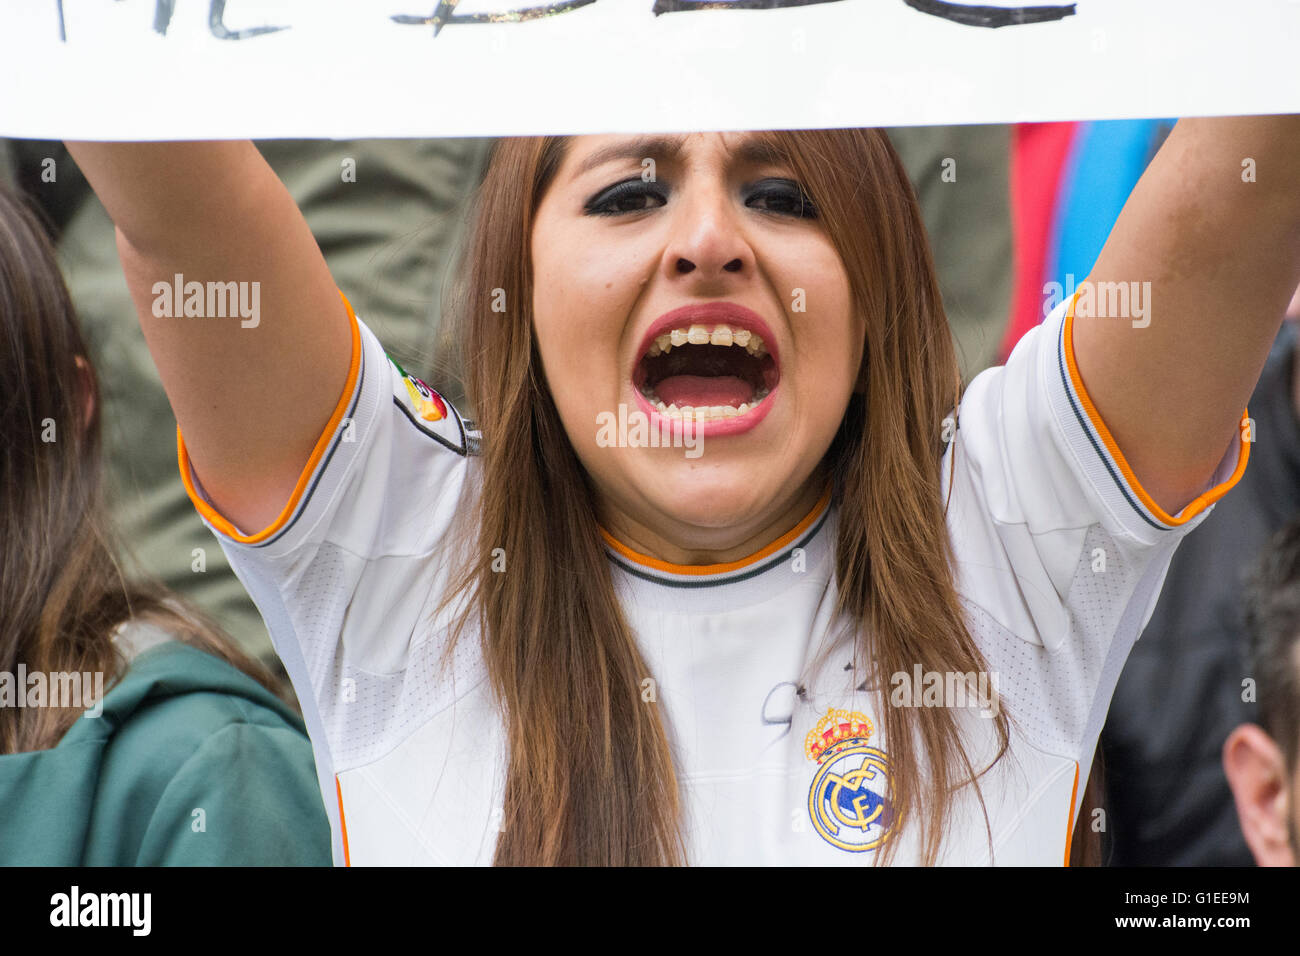 32d852095 Real Madrid Fan Stock Photos & Real Madrid Fan Stock Images - Alamy